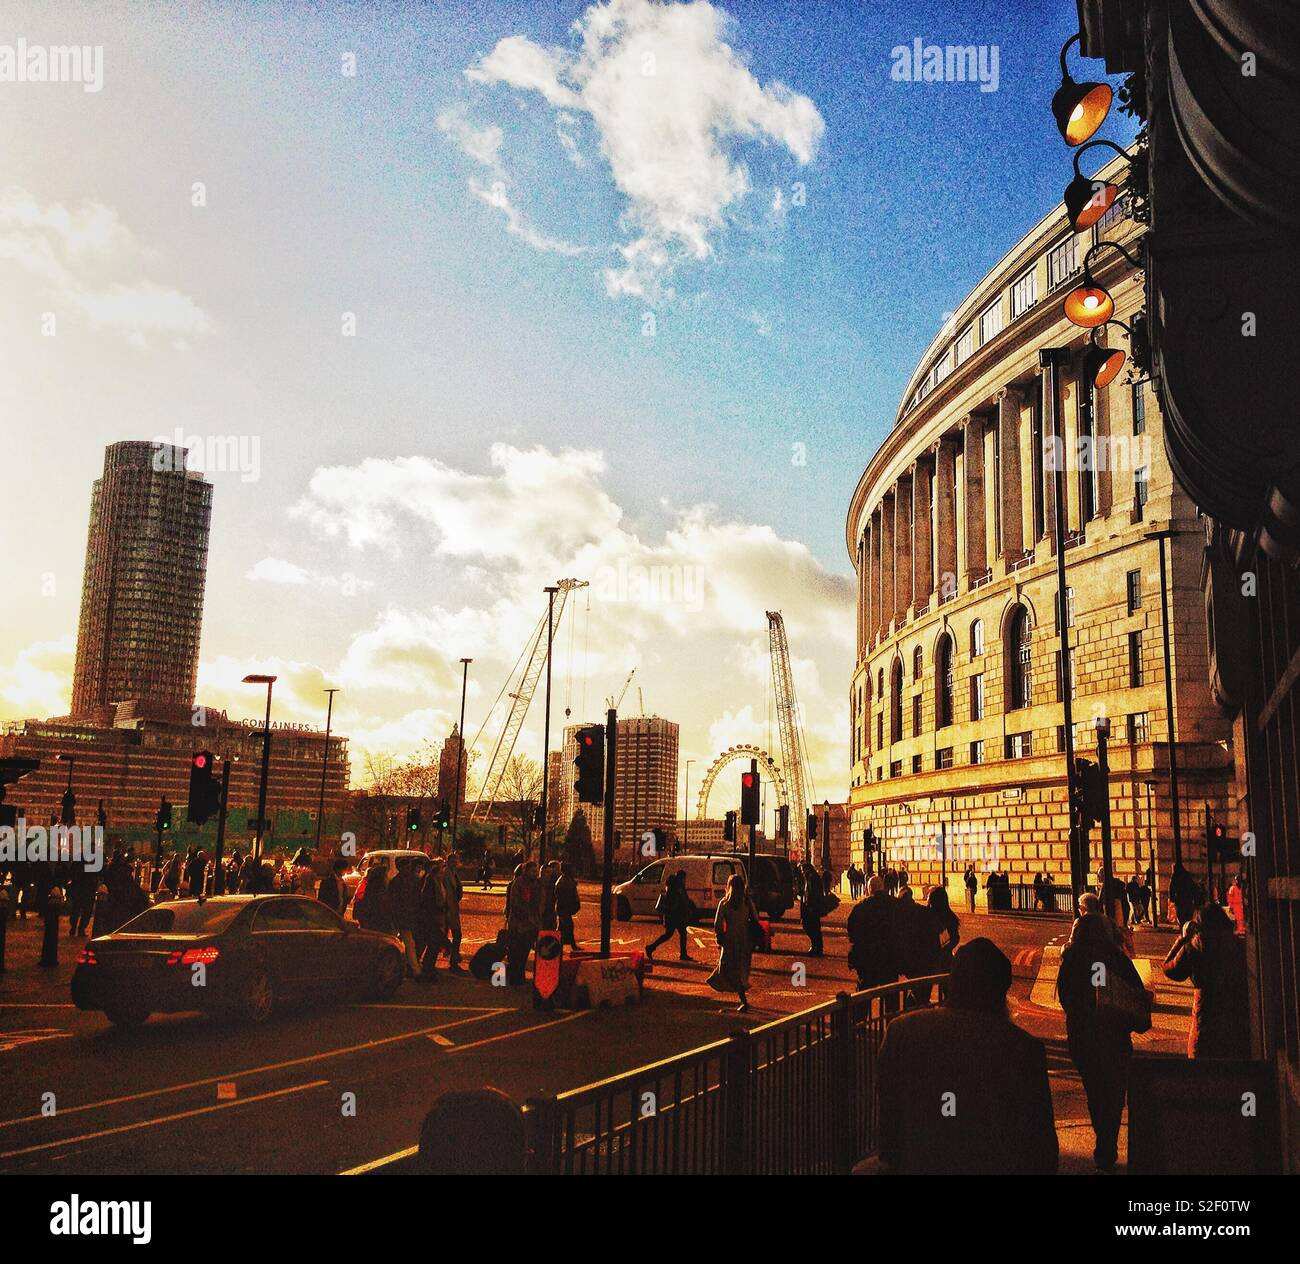 Bustling Autumn cityscape at Blackfriars, London showing the elegant Neoclassical Art Deco Unilever building - Stock Image